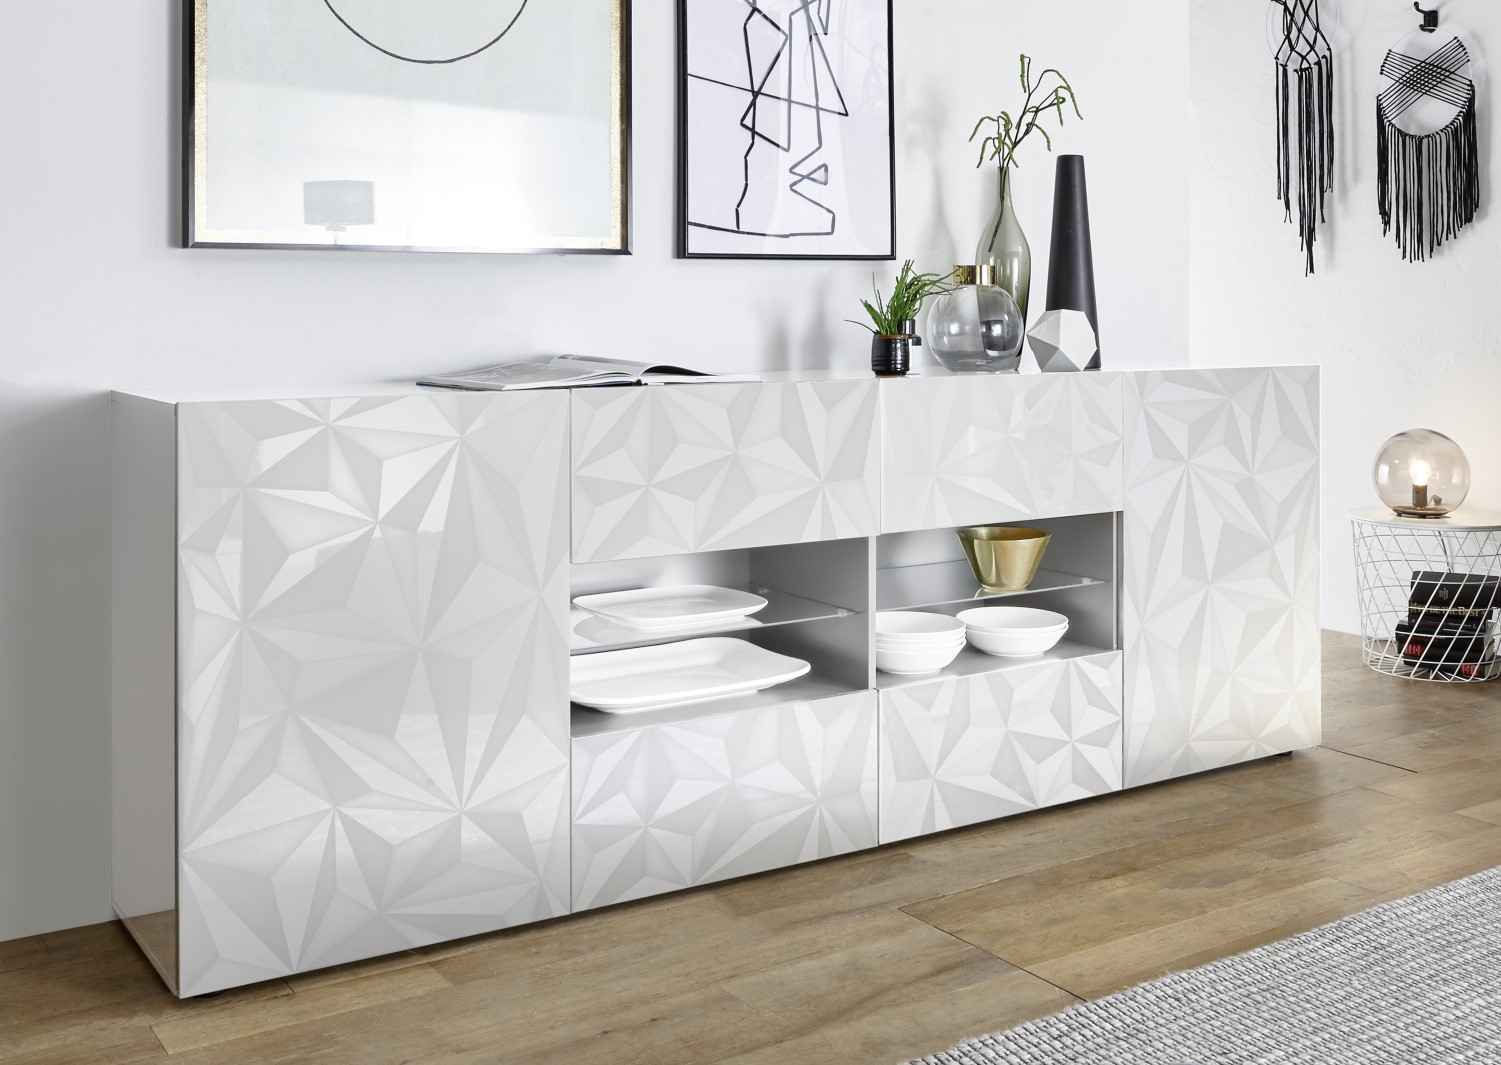 Prisma Weiss_Sideboard 2T+4SK 241cm 209099-08